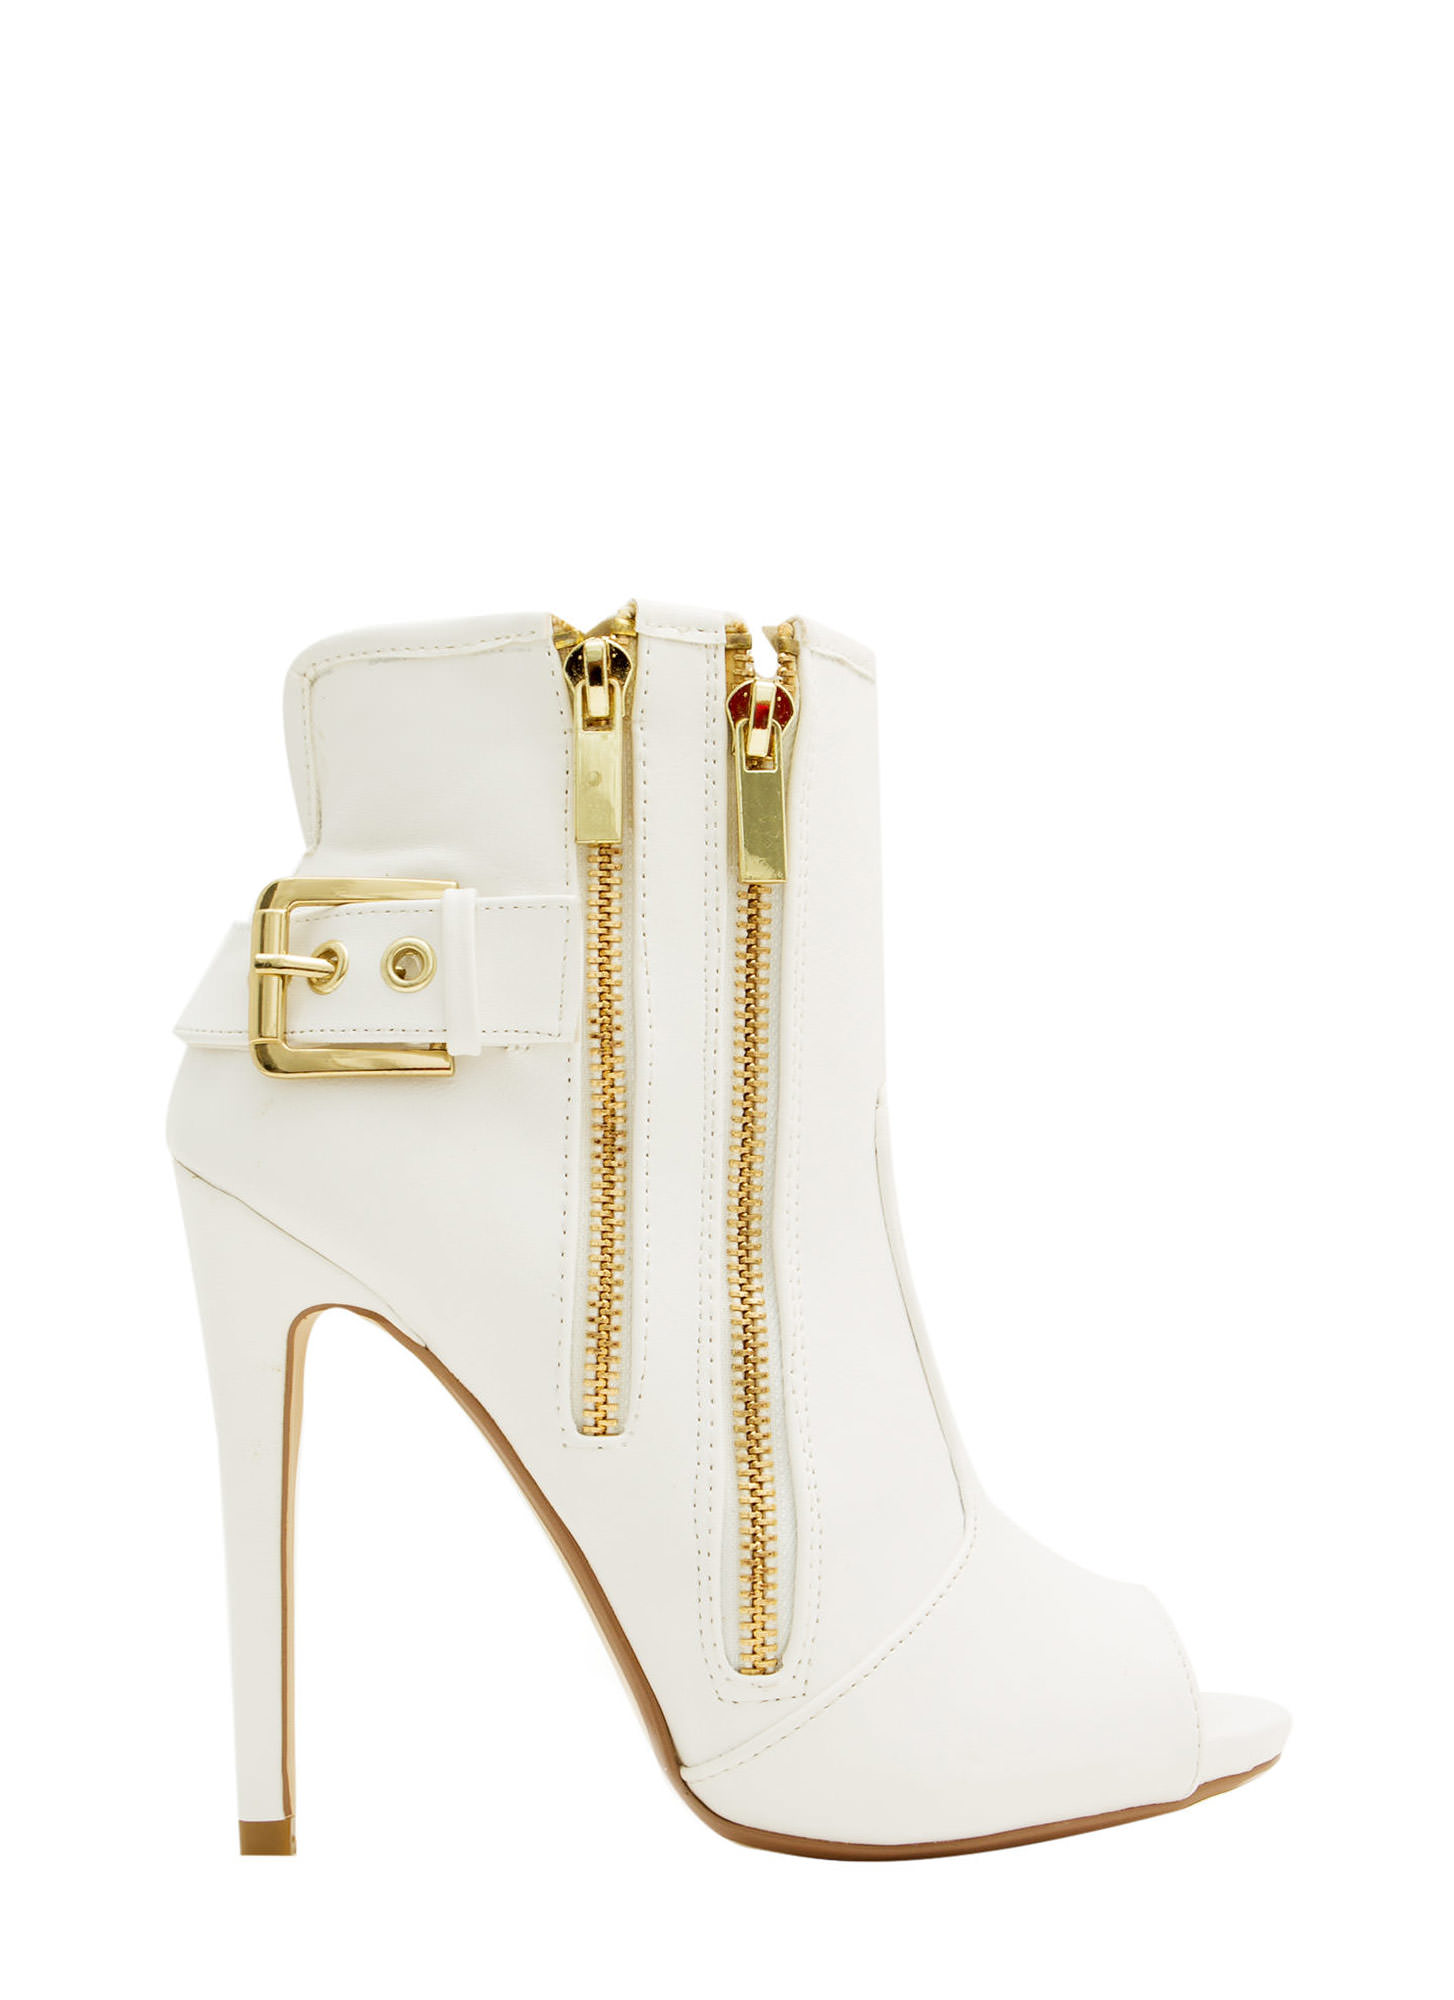 Double Zip Peep-Toe Booties WHITE